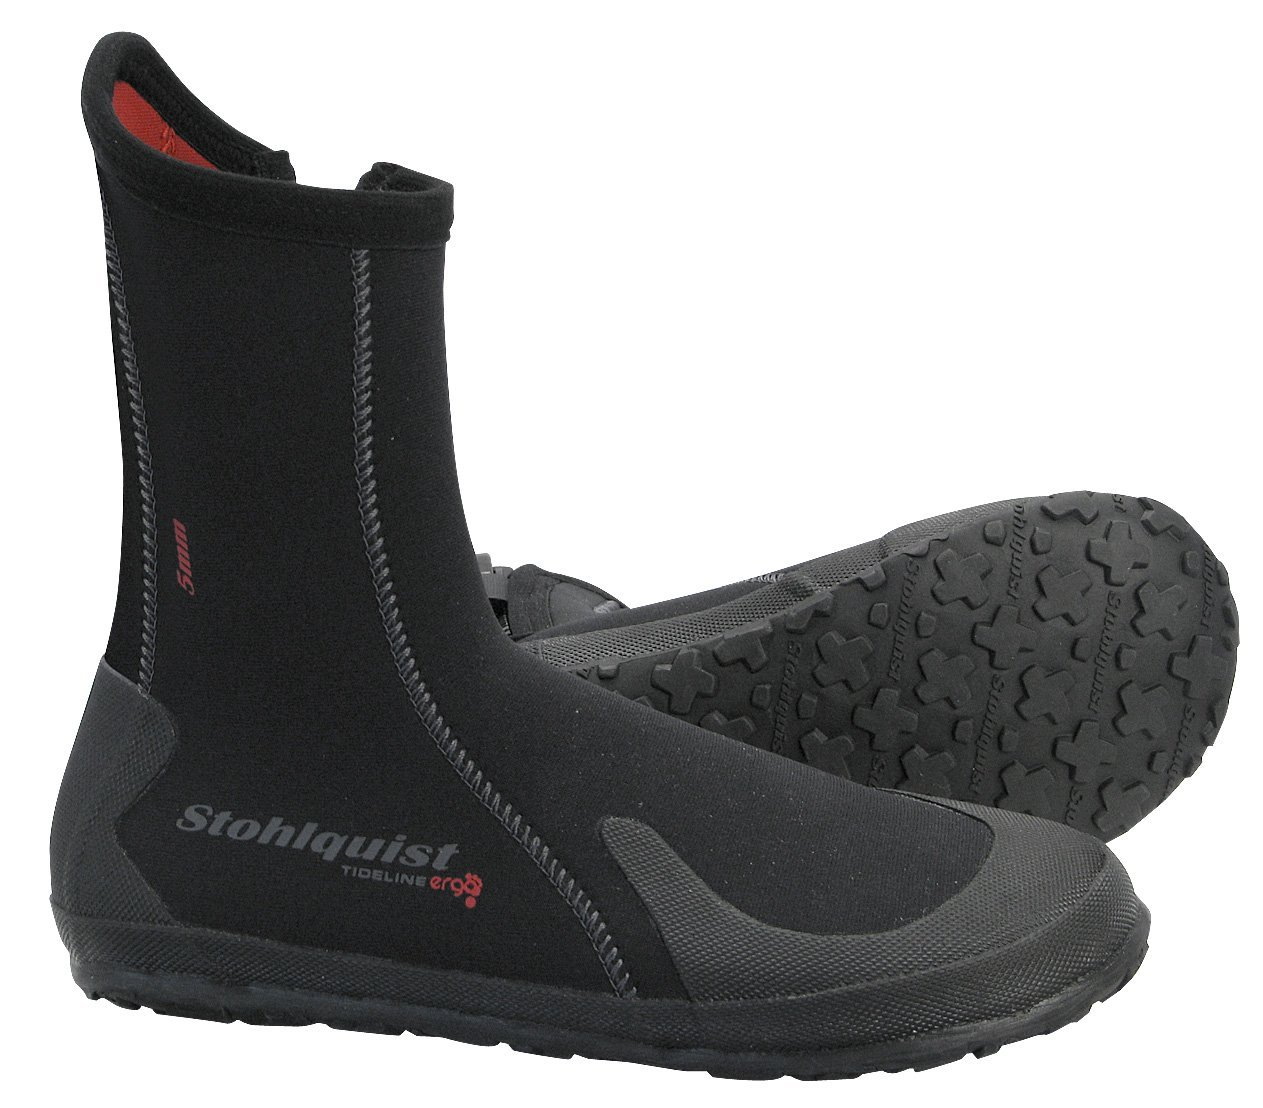 Stohlquist Tideline Boot: The Tideline features a 5mm neoprene upper, heavy-duty zipper, and gusseted zipper opening which helps to reduce water exchange. The thick rubber outsole features a proprietary Stohlquist tread pattern for outstanding traction.  The ergonomic shape, which echoes the natural shape of the foot, allows for the best possible fit and comfort in a paddling boot. The Ergo™ shape also helps to increase the overall warmth of the boot, by contouring the foot and minimizing water pockets.